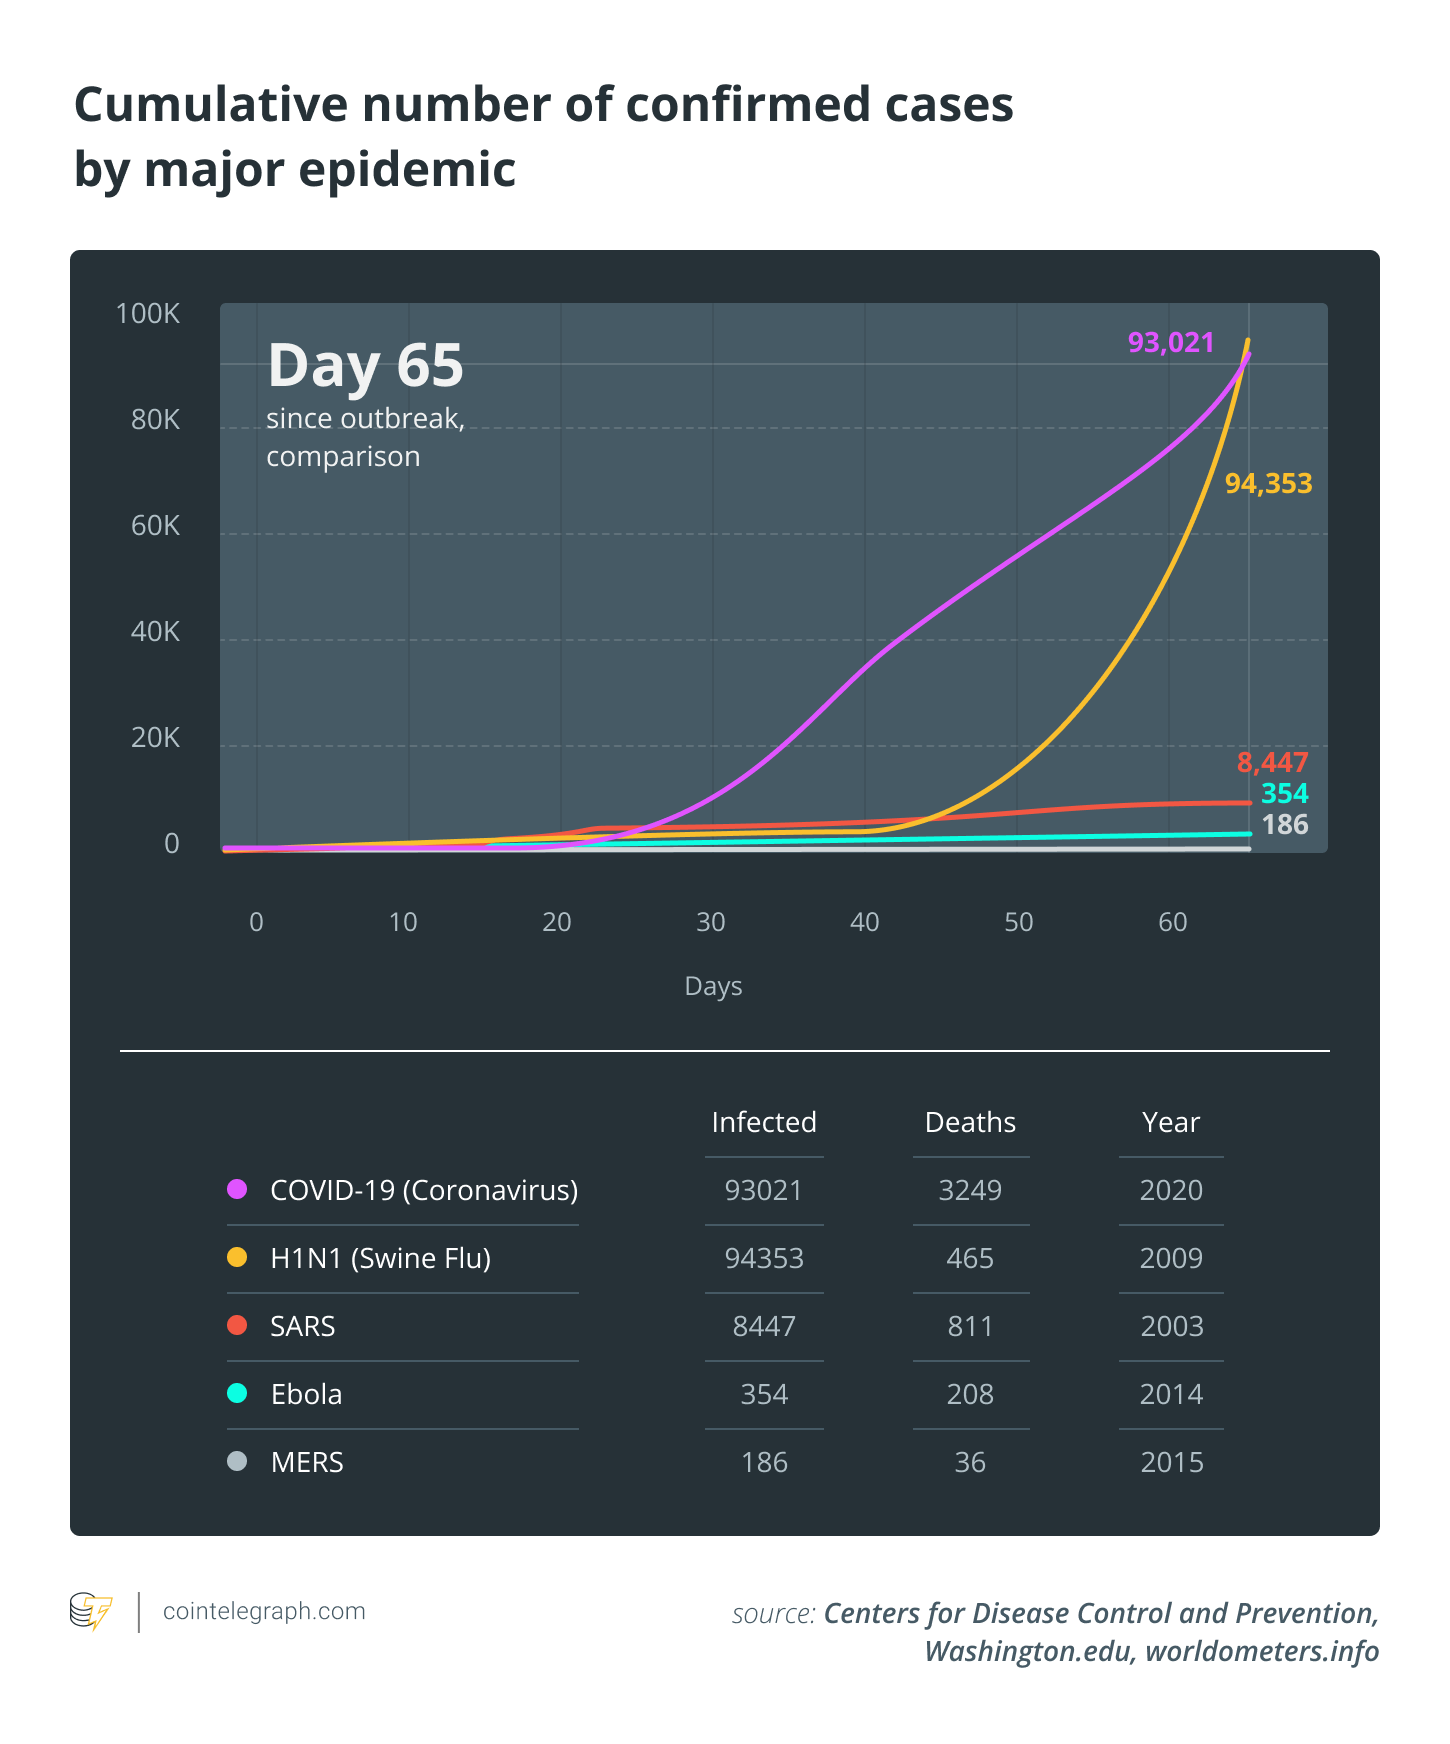 Cumulative number of confirmed cases by major epidemic